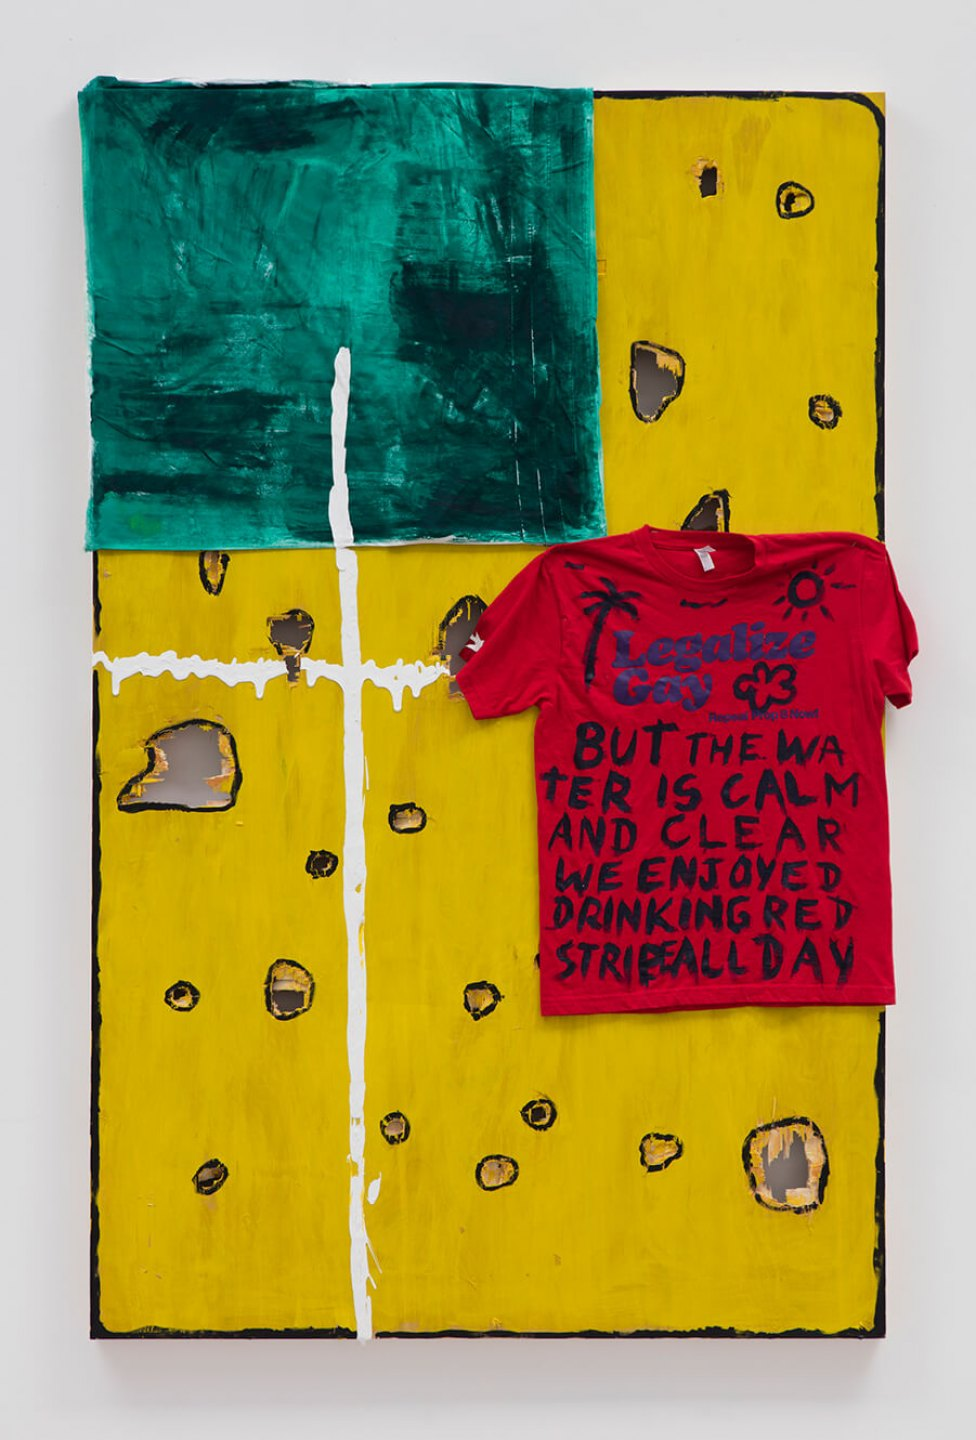 Adriano Costa, <em>Rotten Cheese Lettuce And A Slice Of Tomato</em>, 2016<br>t-shirt, fabric and acrylic on plywood panel, 188 × 119,4 × 5,4 cm - Mendes Wood DM